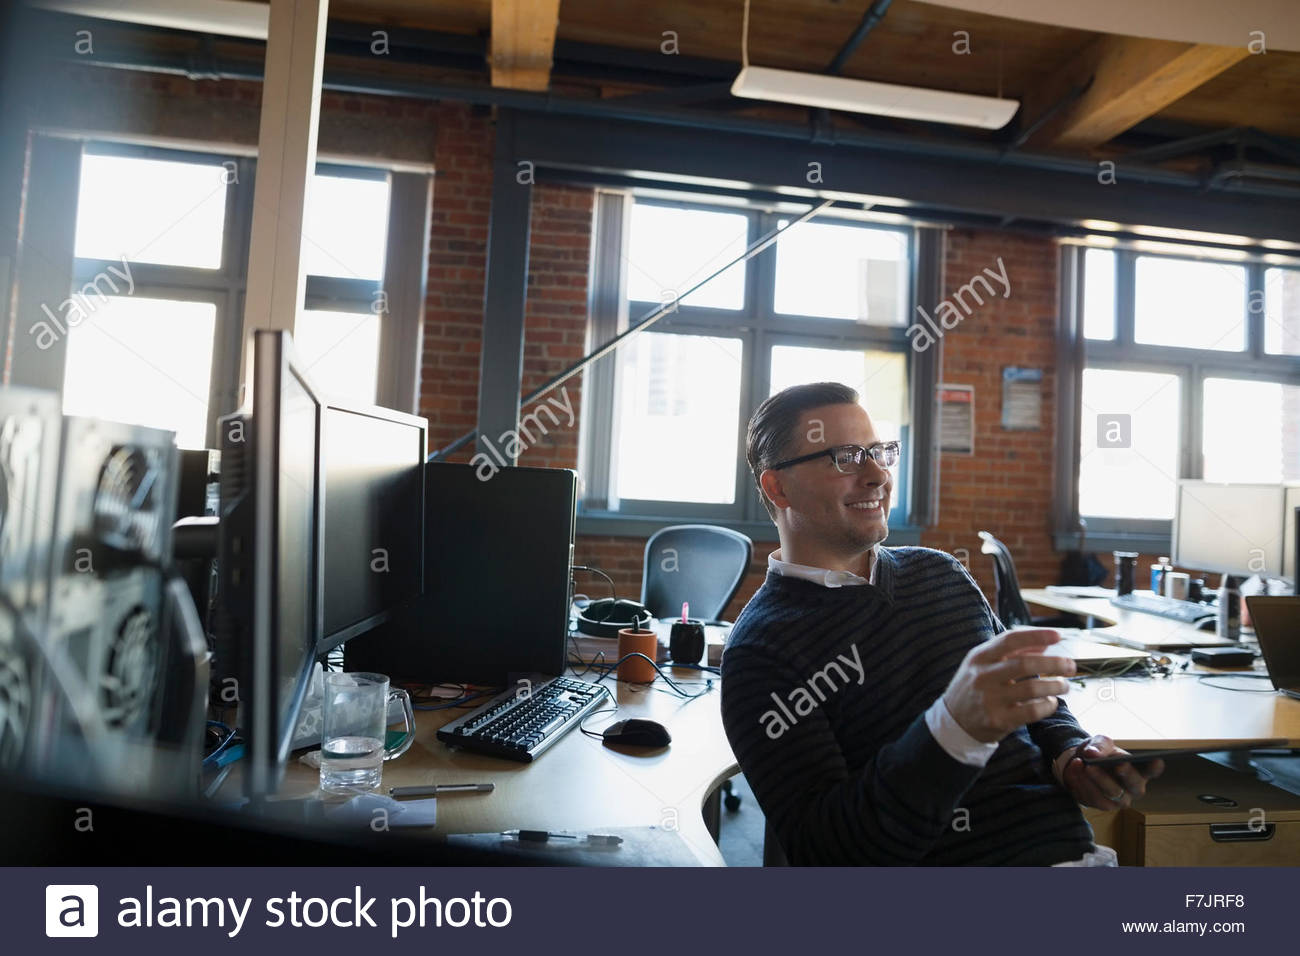 Smiling businessman gesturing in office - Stock Image